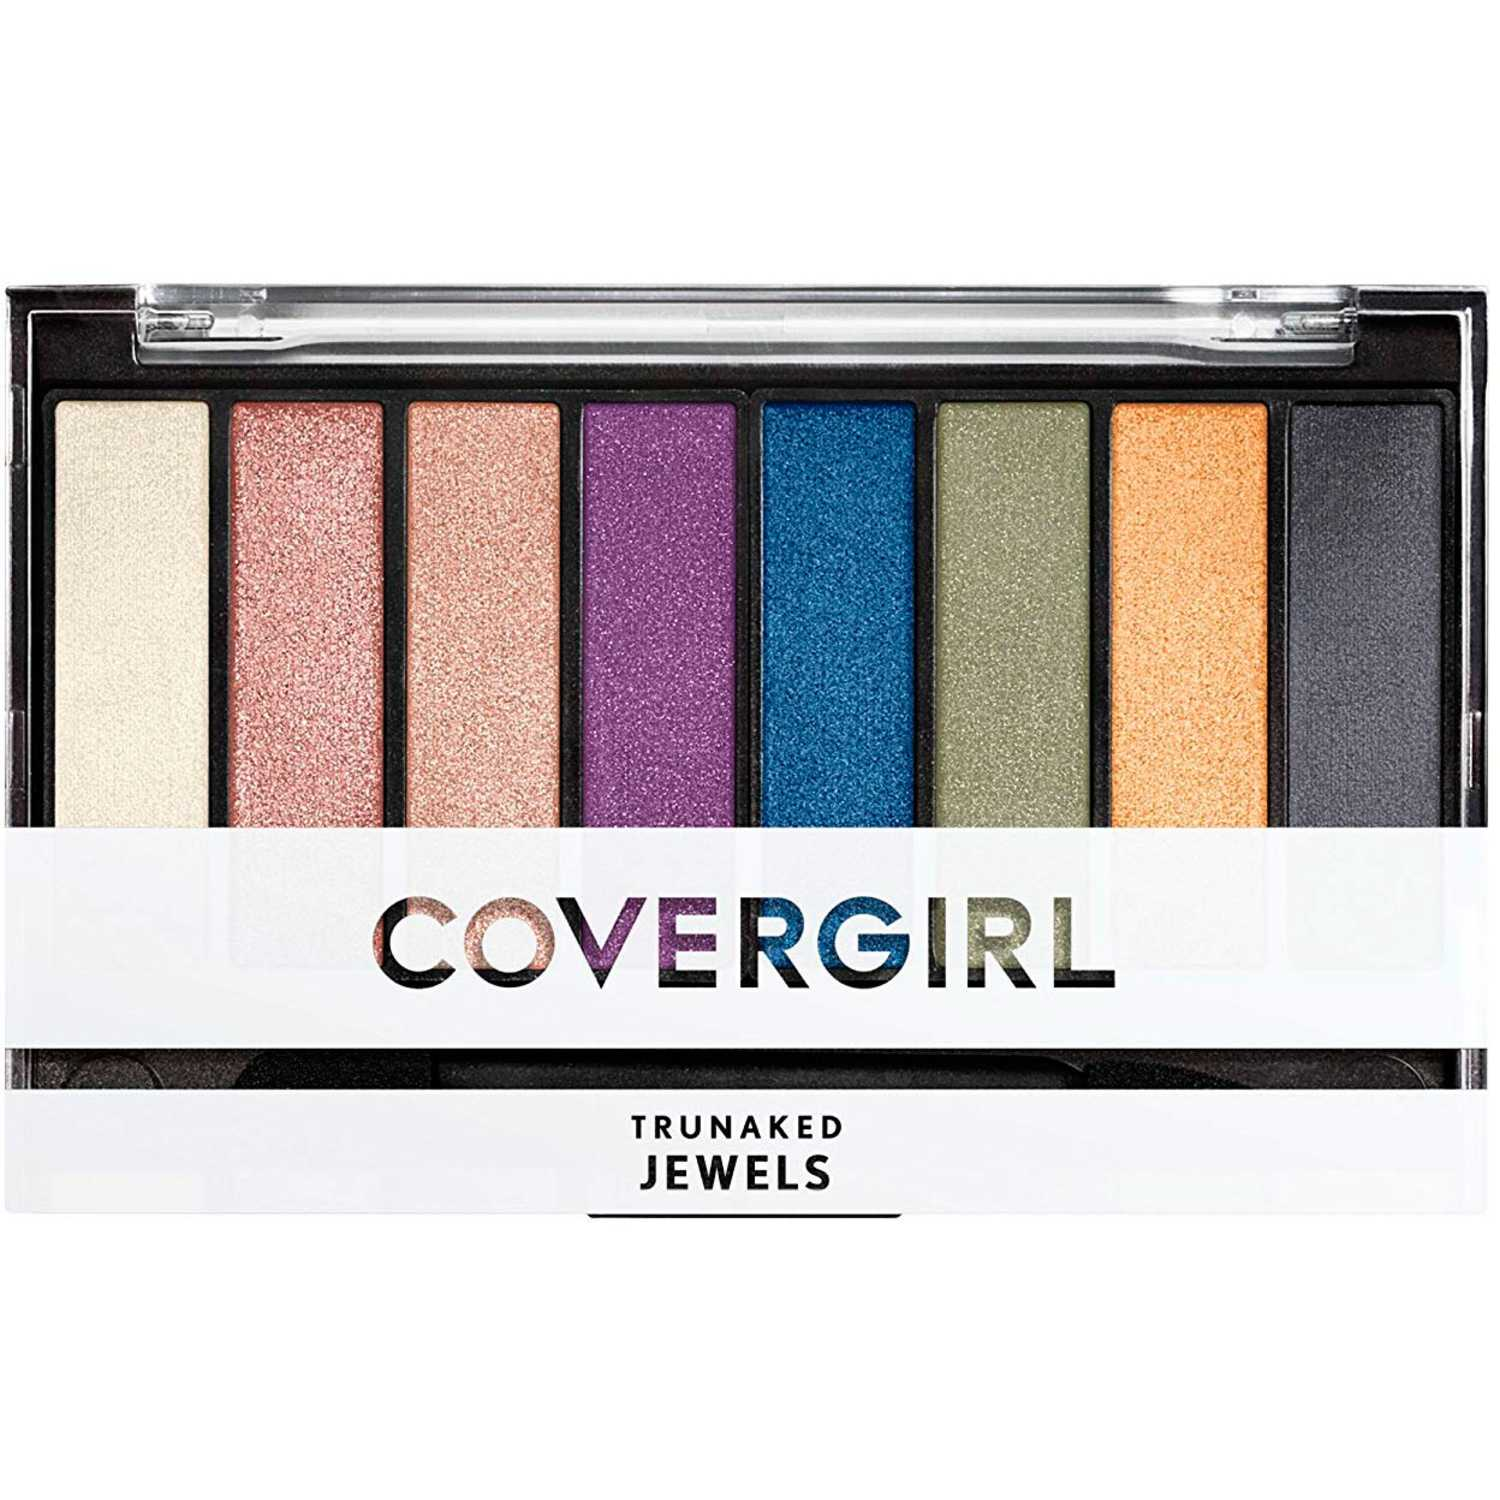 Covergirl Octeto Sombras Trunaked Jewels Sombras para ojos